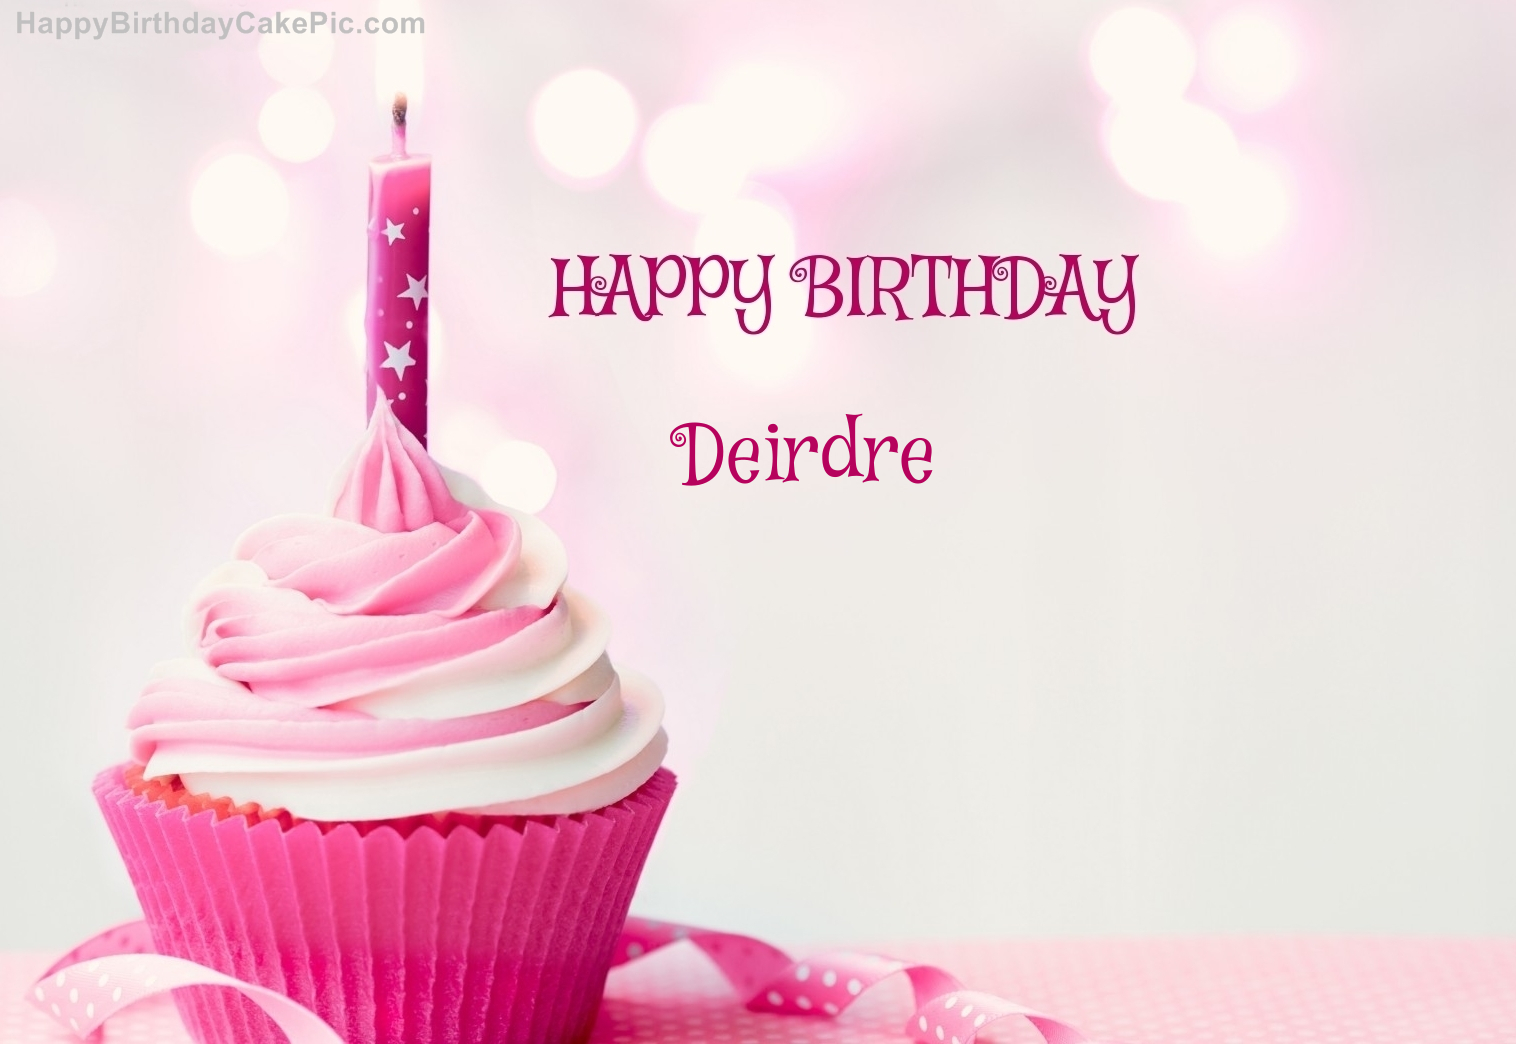 Happy Birthday Cupcake Candle Pink Cake For Deirdre